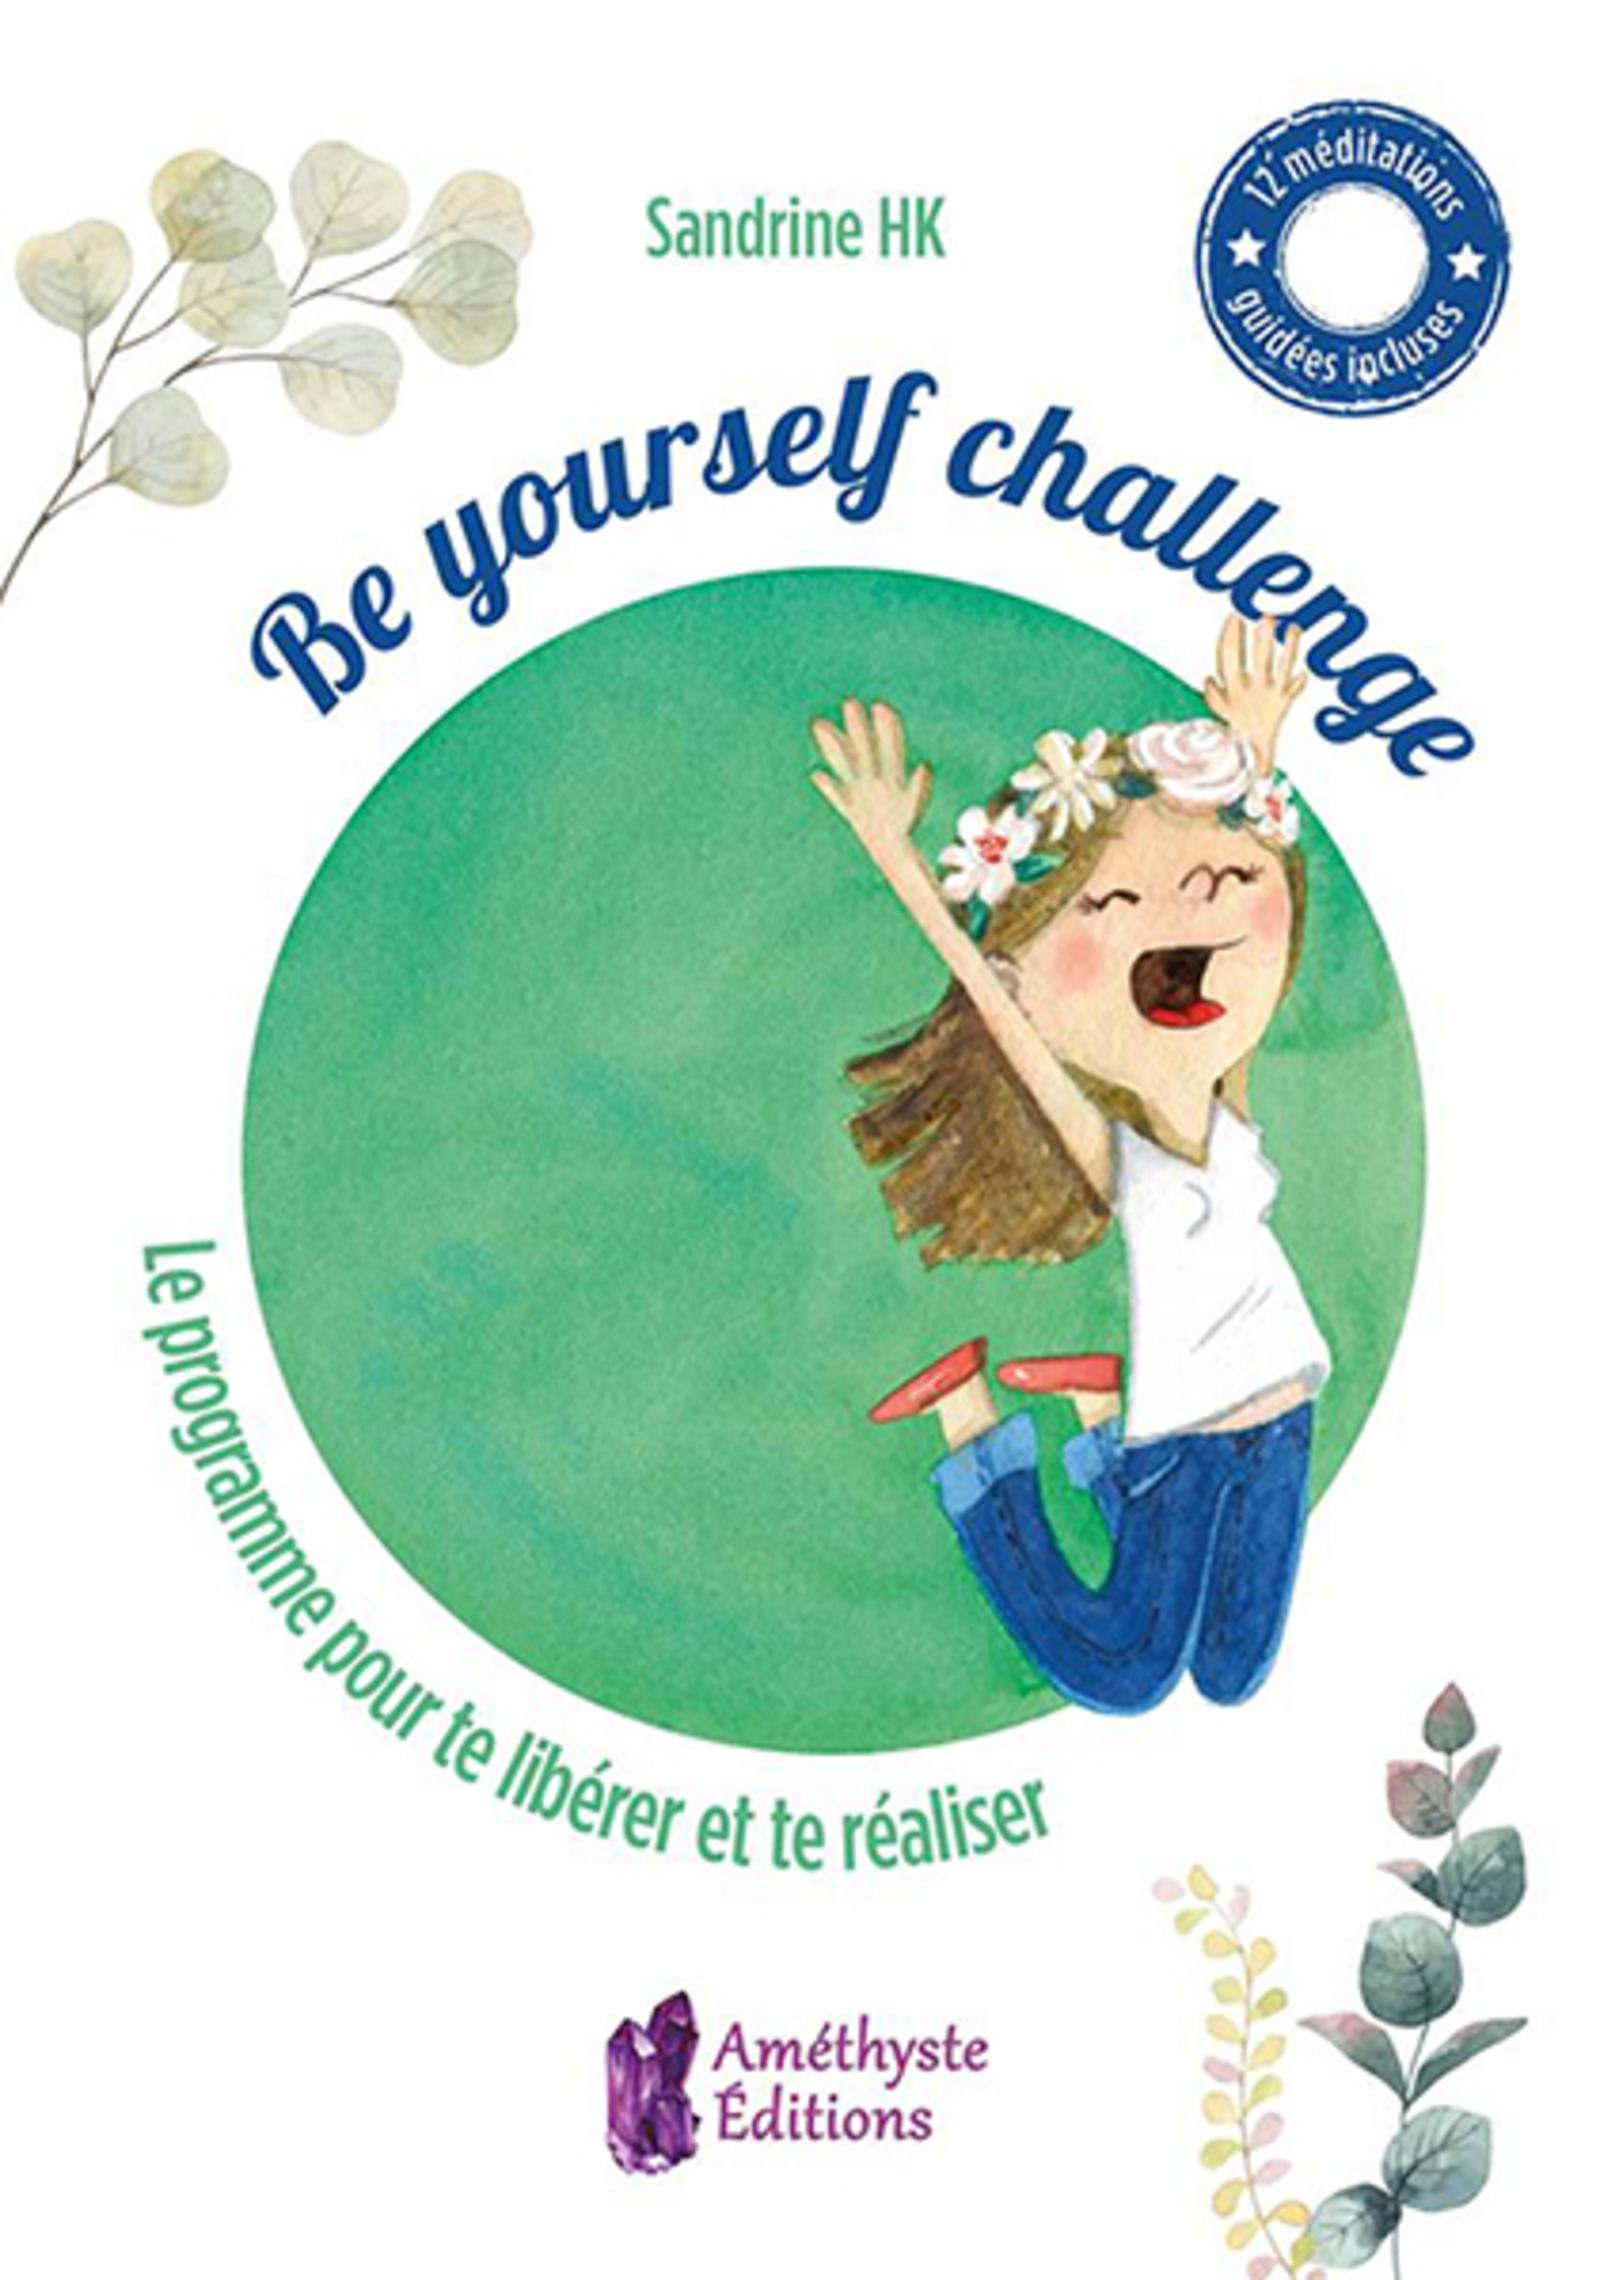 BE YOURSELF CHALLENGE - LE PROGRAMME POUR TE LIBERER ET TE REALISER